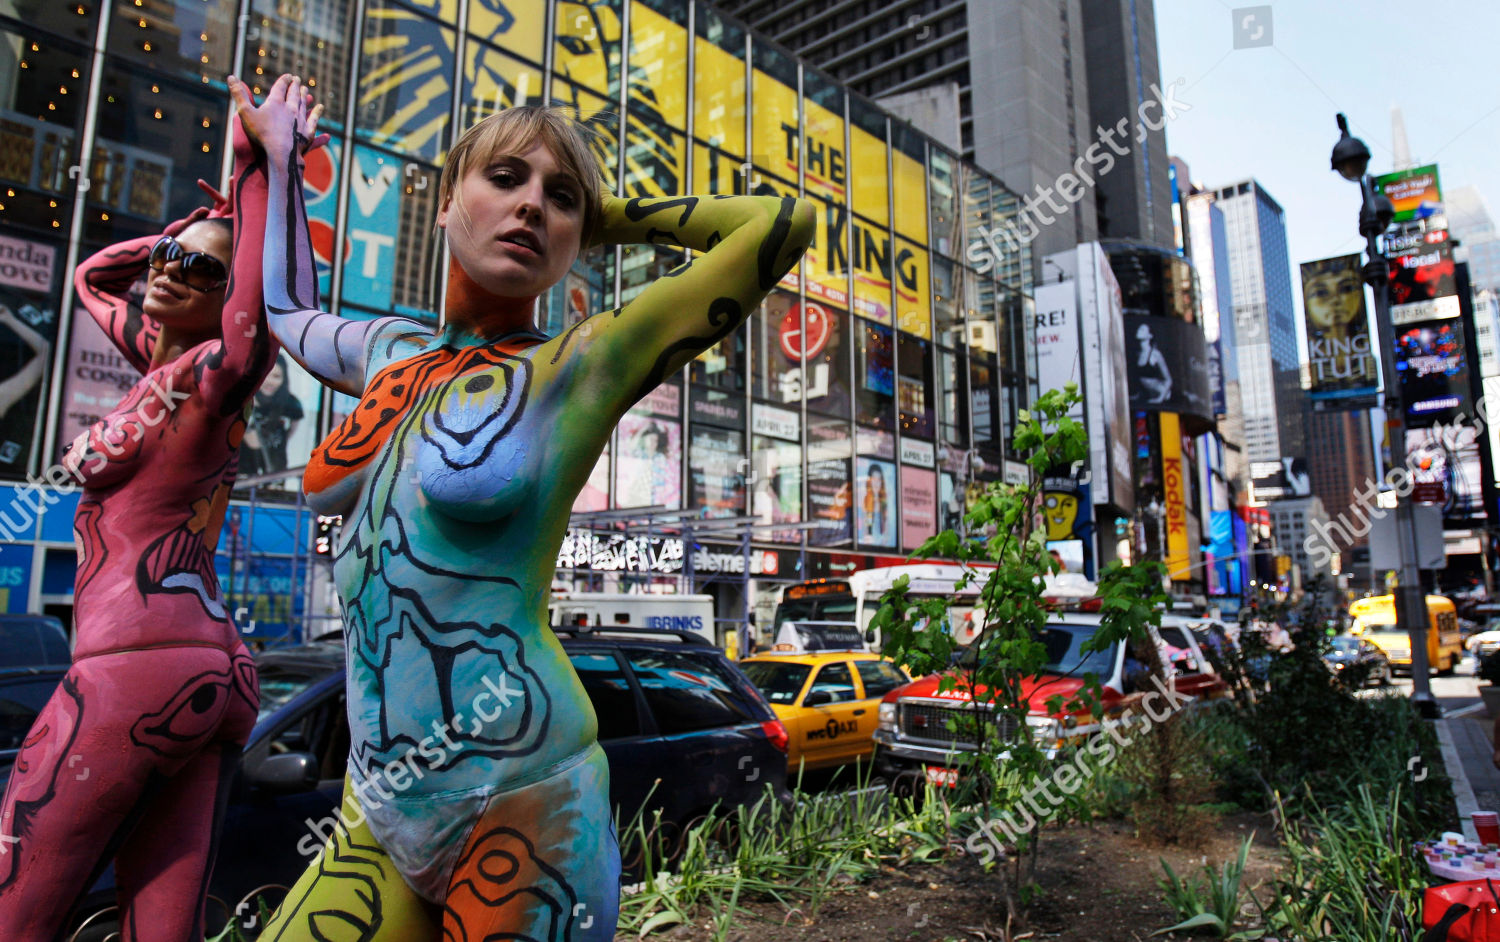 NYC Bodypainting Day - SFGate